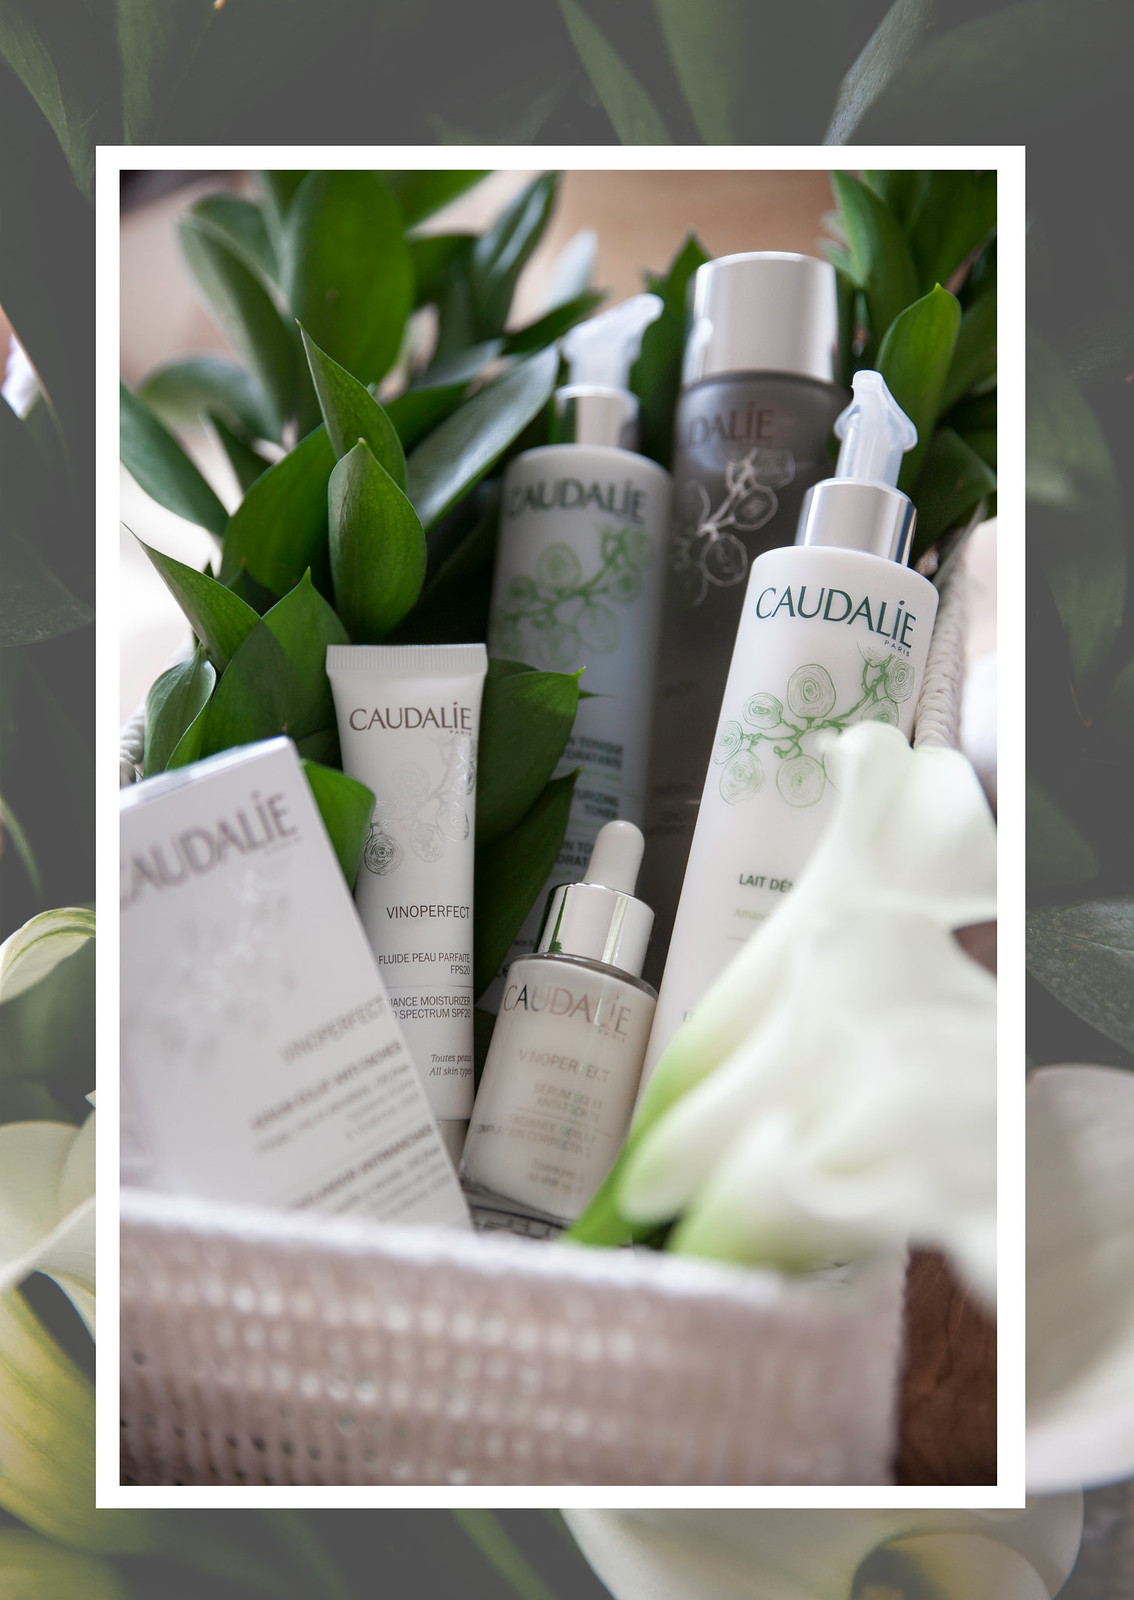 03_Caudalie_beauty_tips_theguestgirl tratamiento cosmética natural love